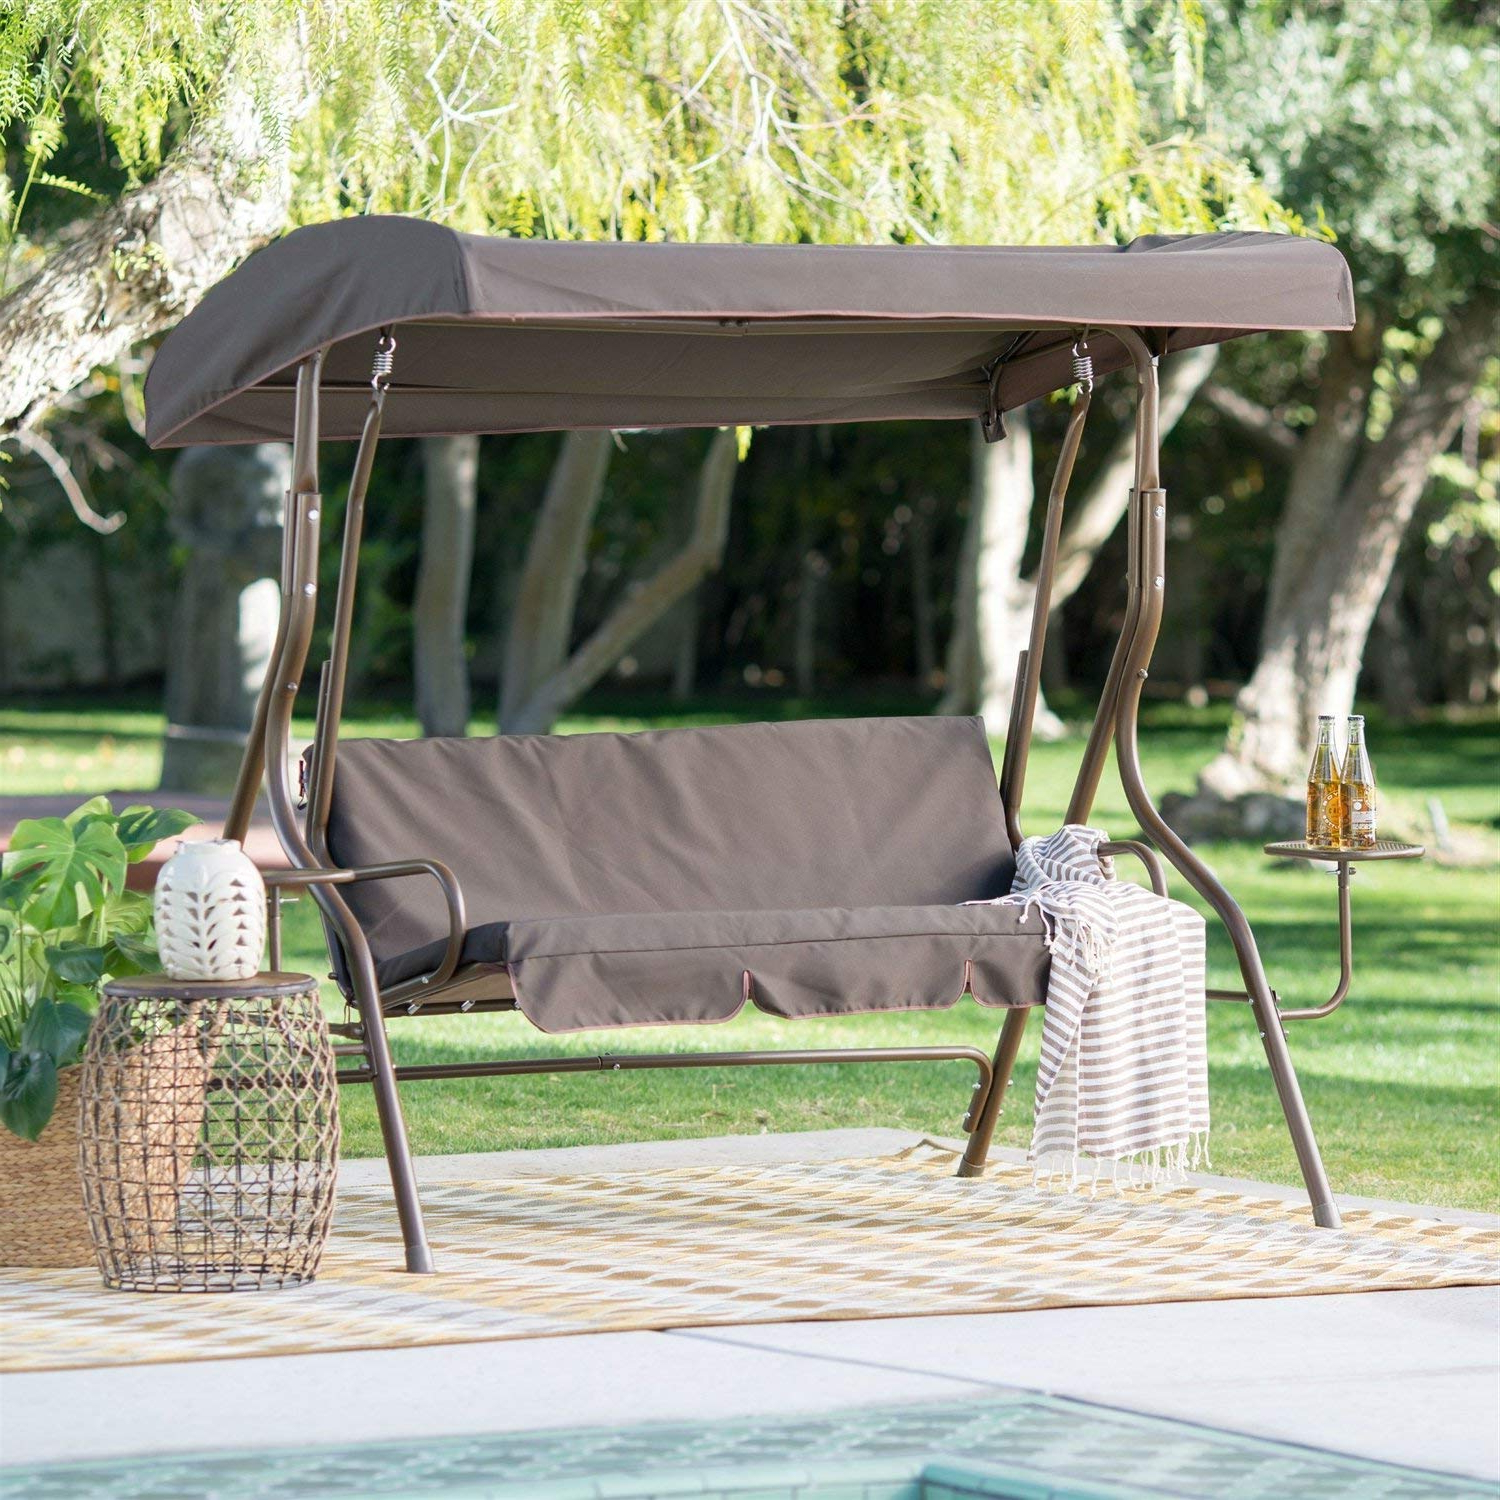 2 Person Adjustable Tilt Canopy Patio Loveseat Porch Swings For 2019 Amazon: Starsun Depot Outdoor Patio 2 Person Porch Swing (View 14 of 30)